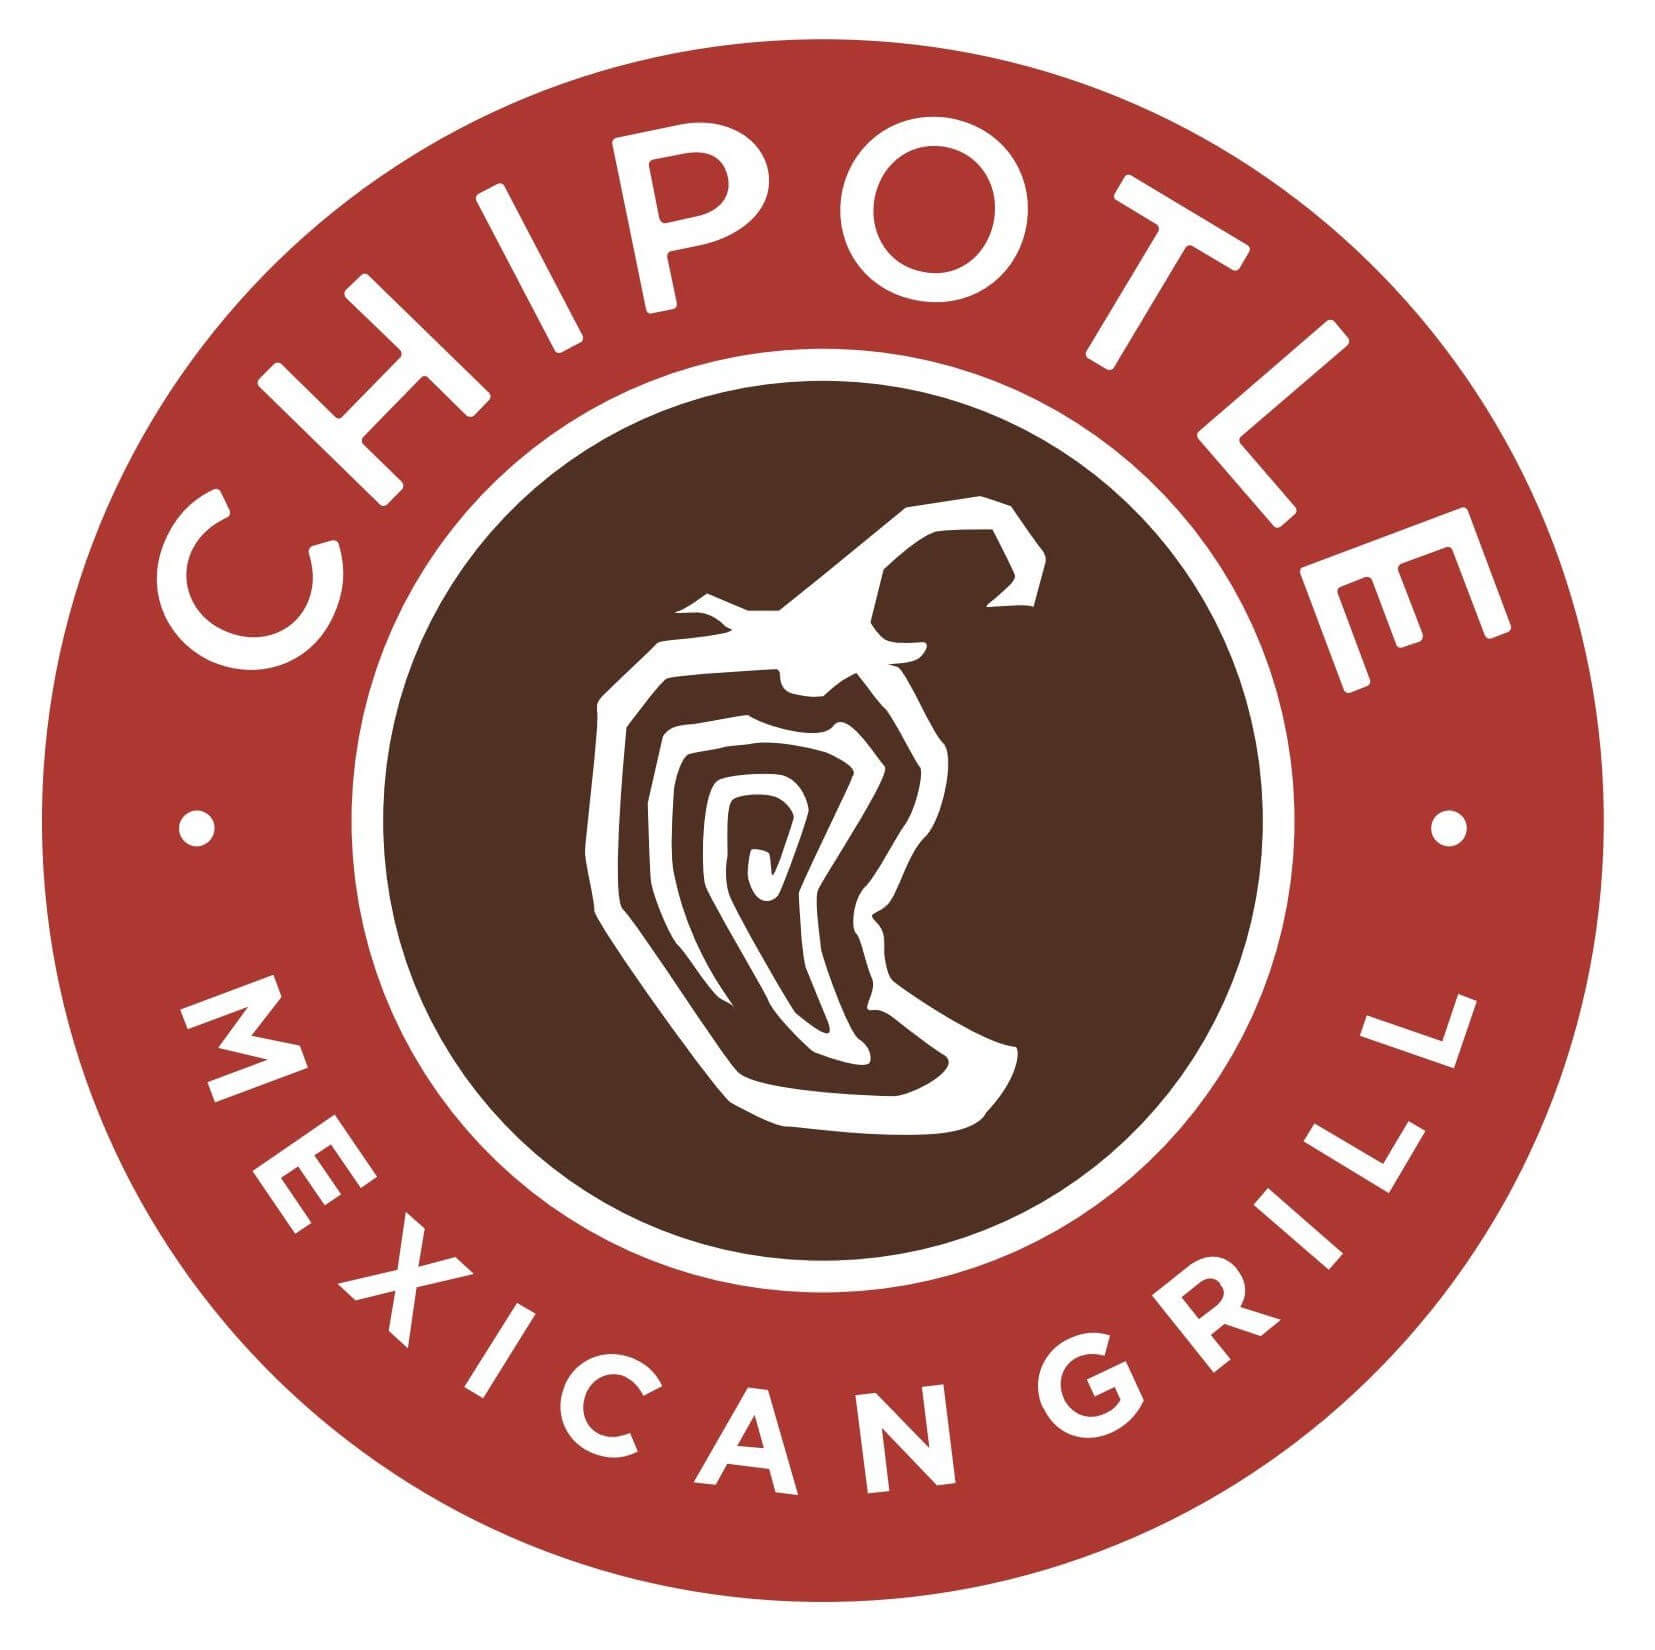 Chipotle Mexican Grill Logo [EPS File] png